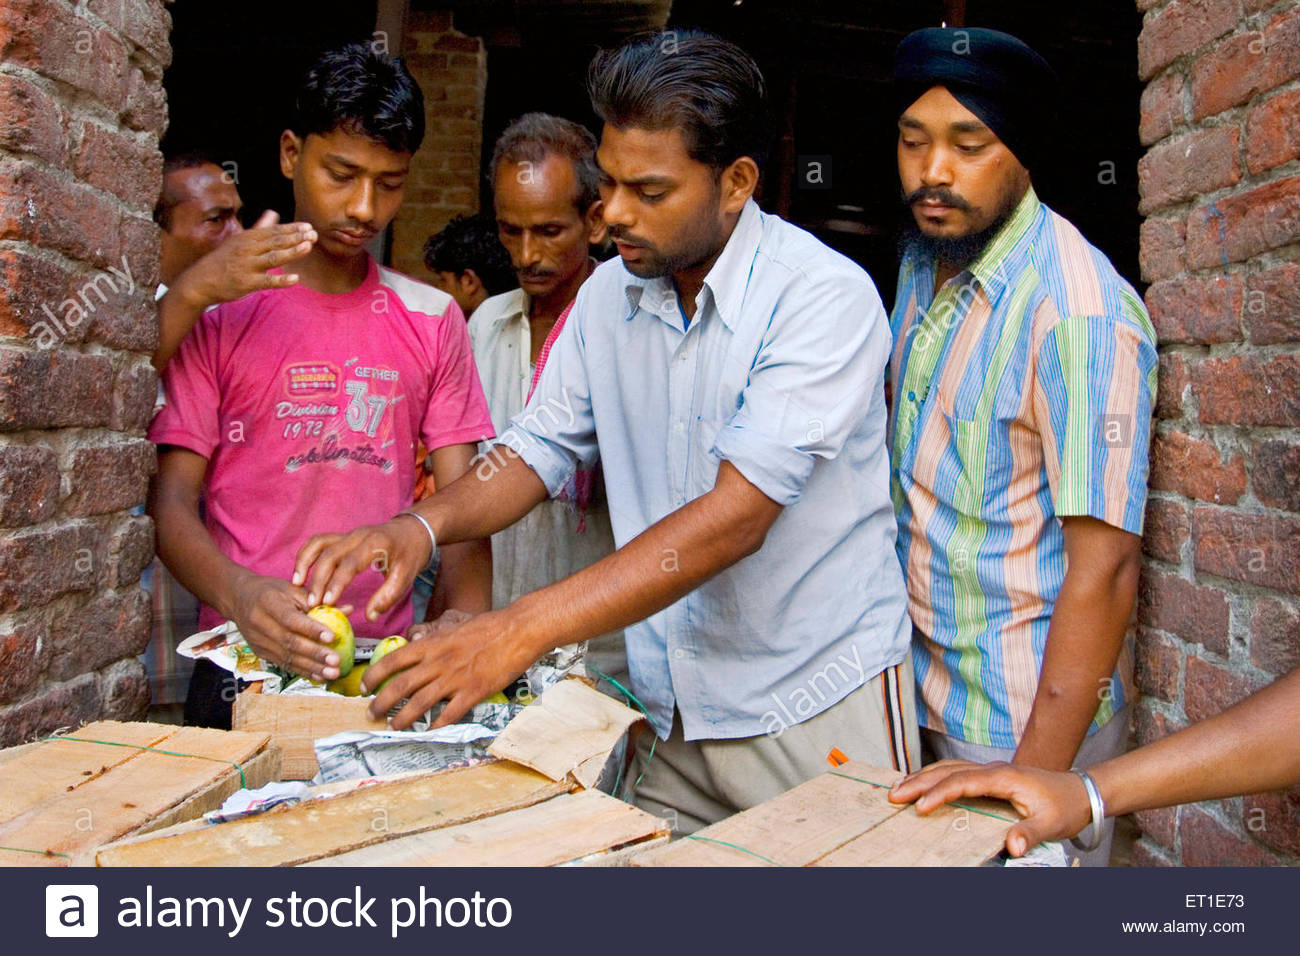 Buyer checking mangoes in Ludhiana vegetable and fruit market ; Punjab ; India - No Model Release - Stock Image